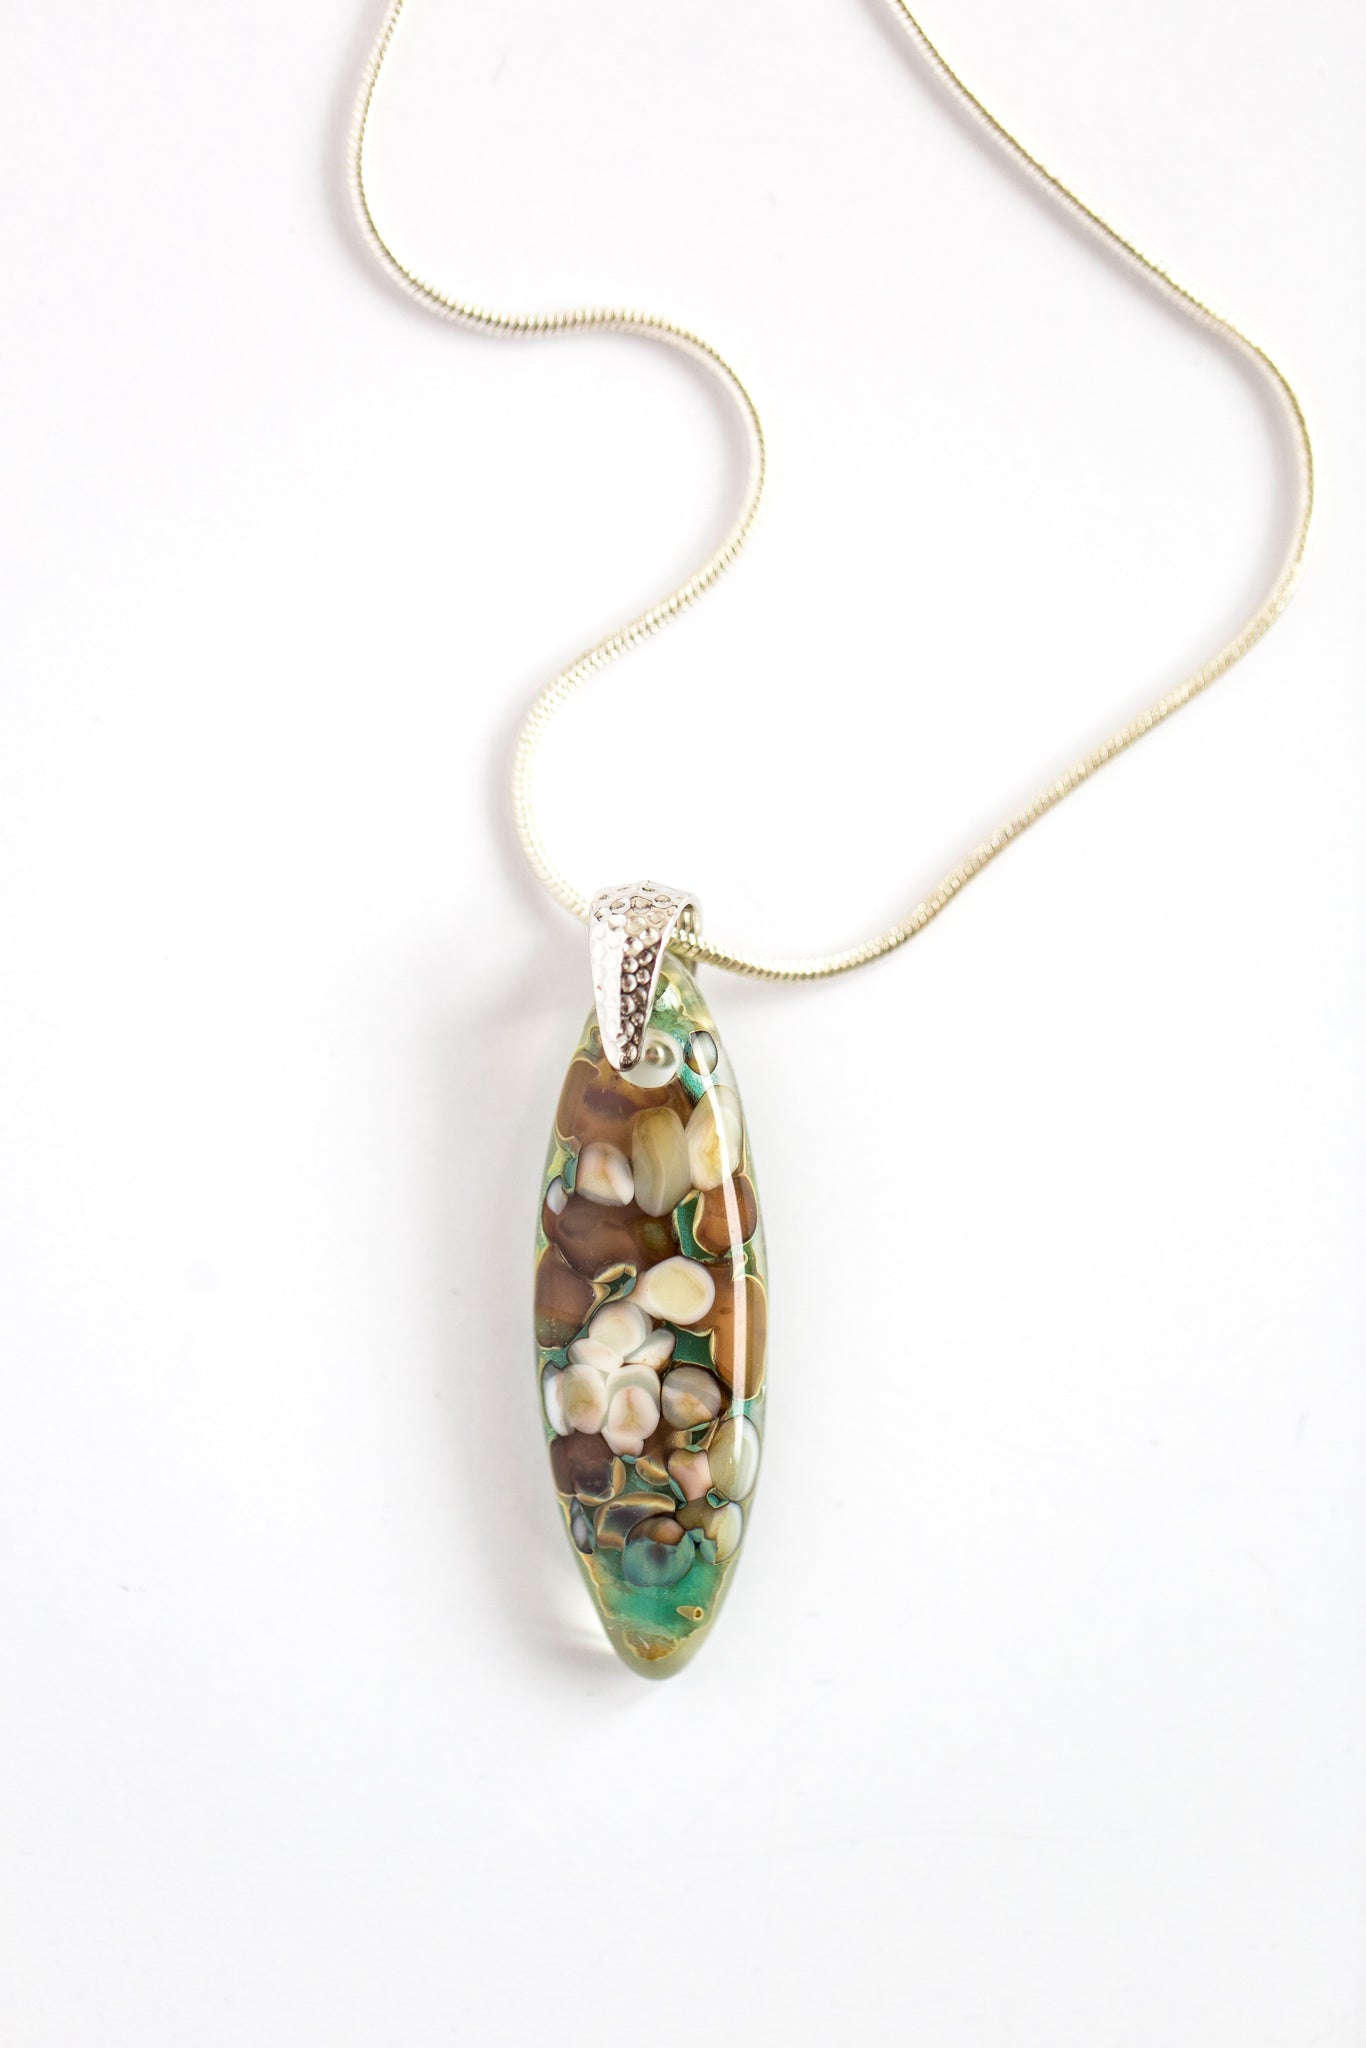 "Floating Pebbles Almond-Shaped Fused Glass Pendant Necklace / Teal + White + Ivory + Tan + Brown Fused Glass / Silver-plated nickel-free pinch bail / Silver-plated nickel-free 16-18"" snake chain necklace"